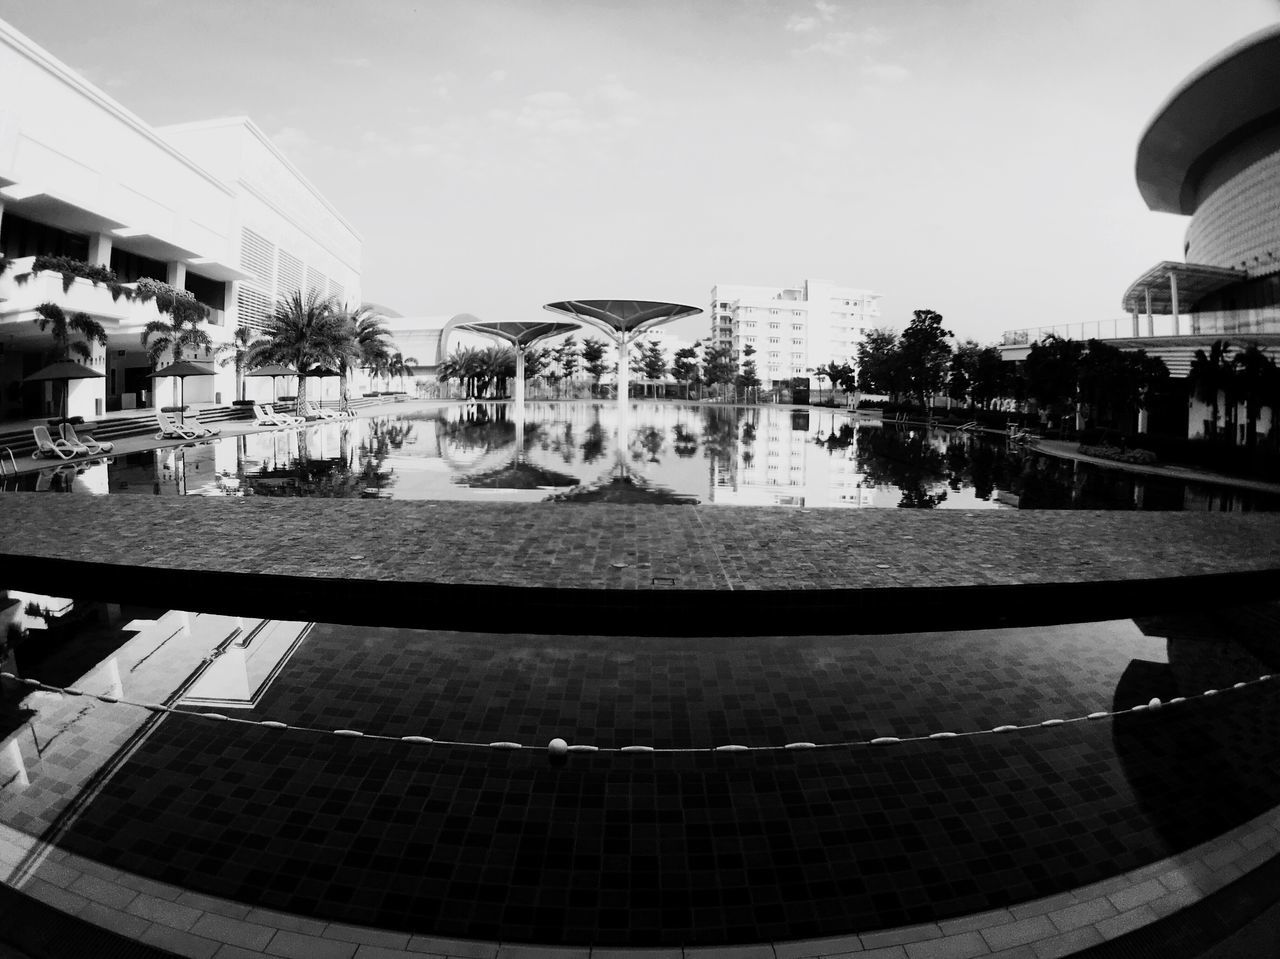 swimming pool, architecture, water, built structure, sky, building exterior, outdoors, real people, day, large group of people, tree, men, fish-eye lens, skateboard park, people